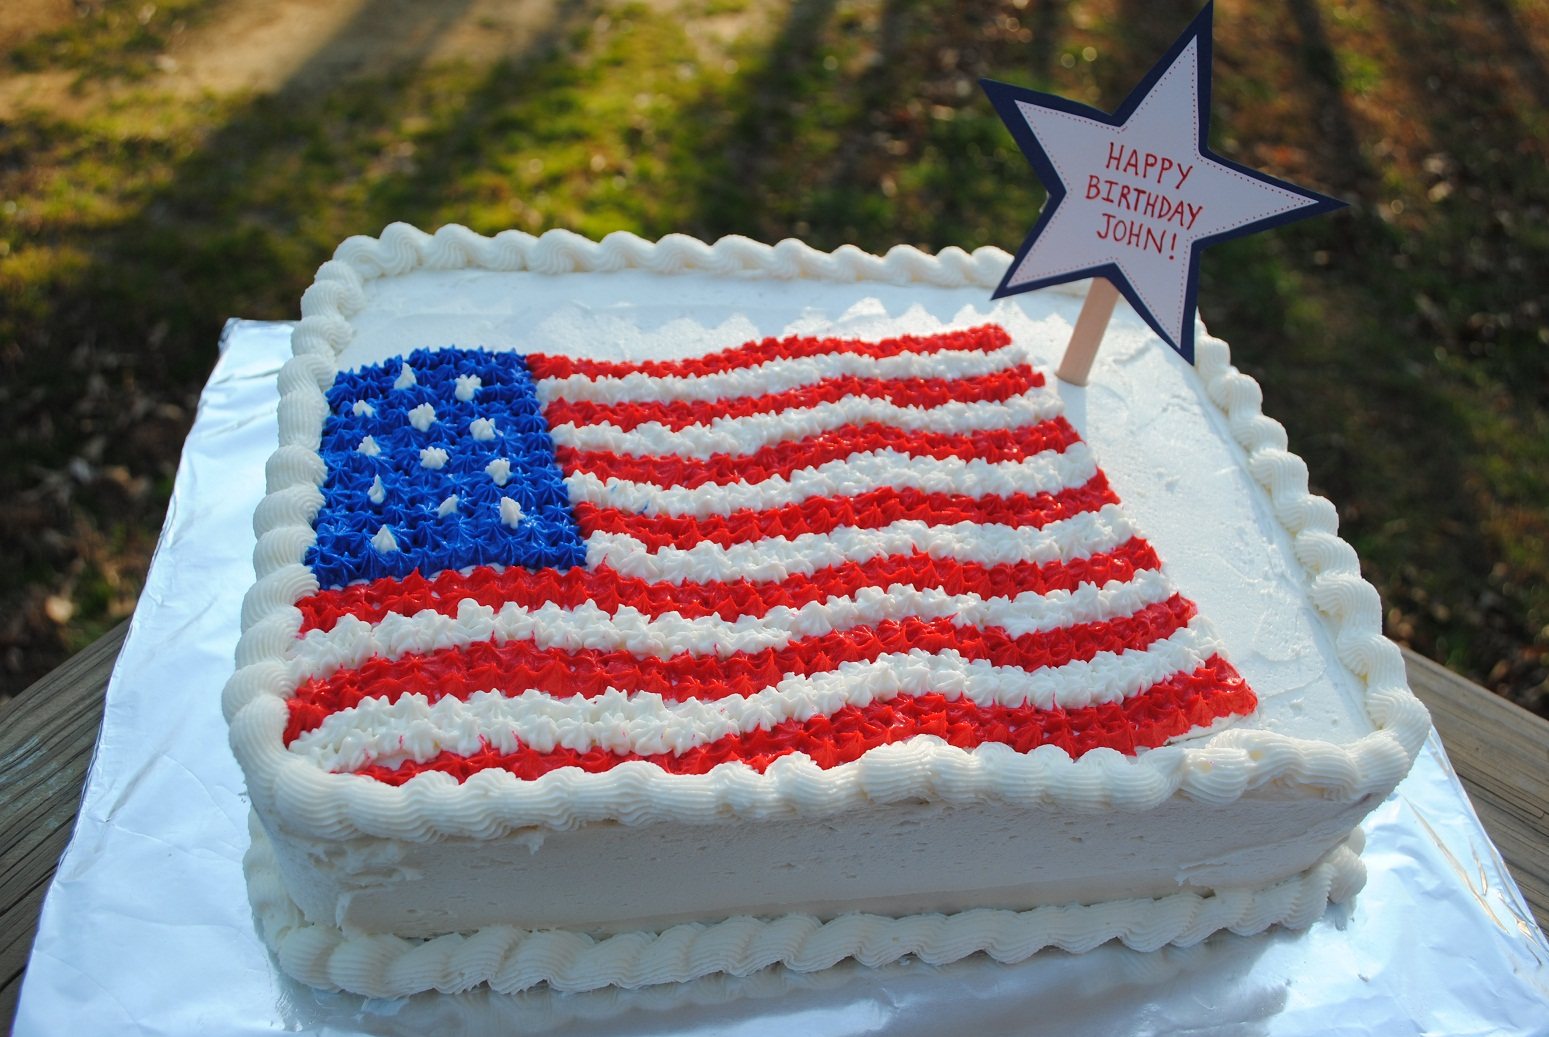 American Flag Cake A chocolate cake with